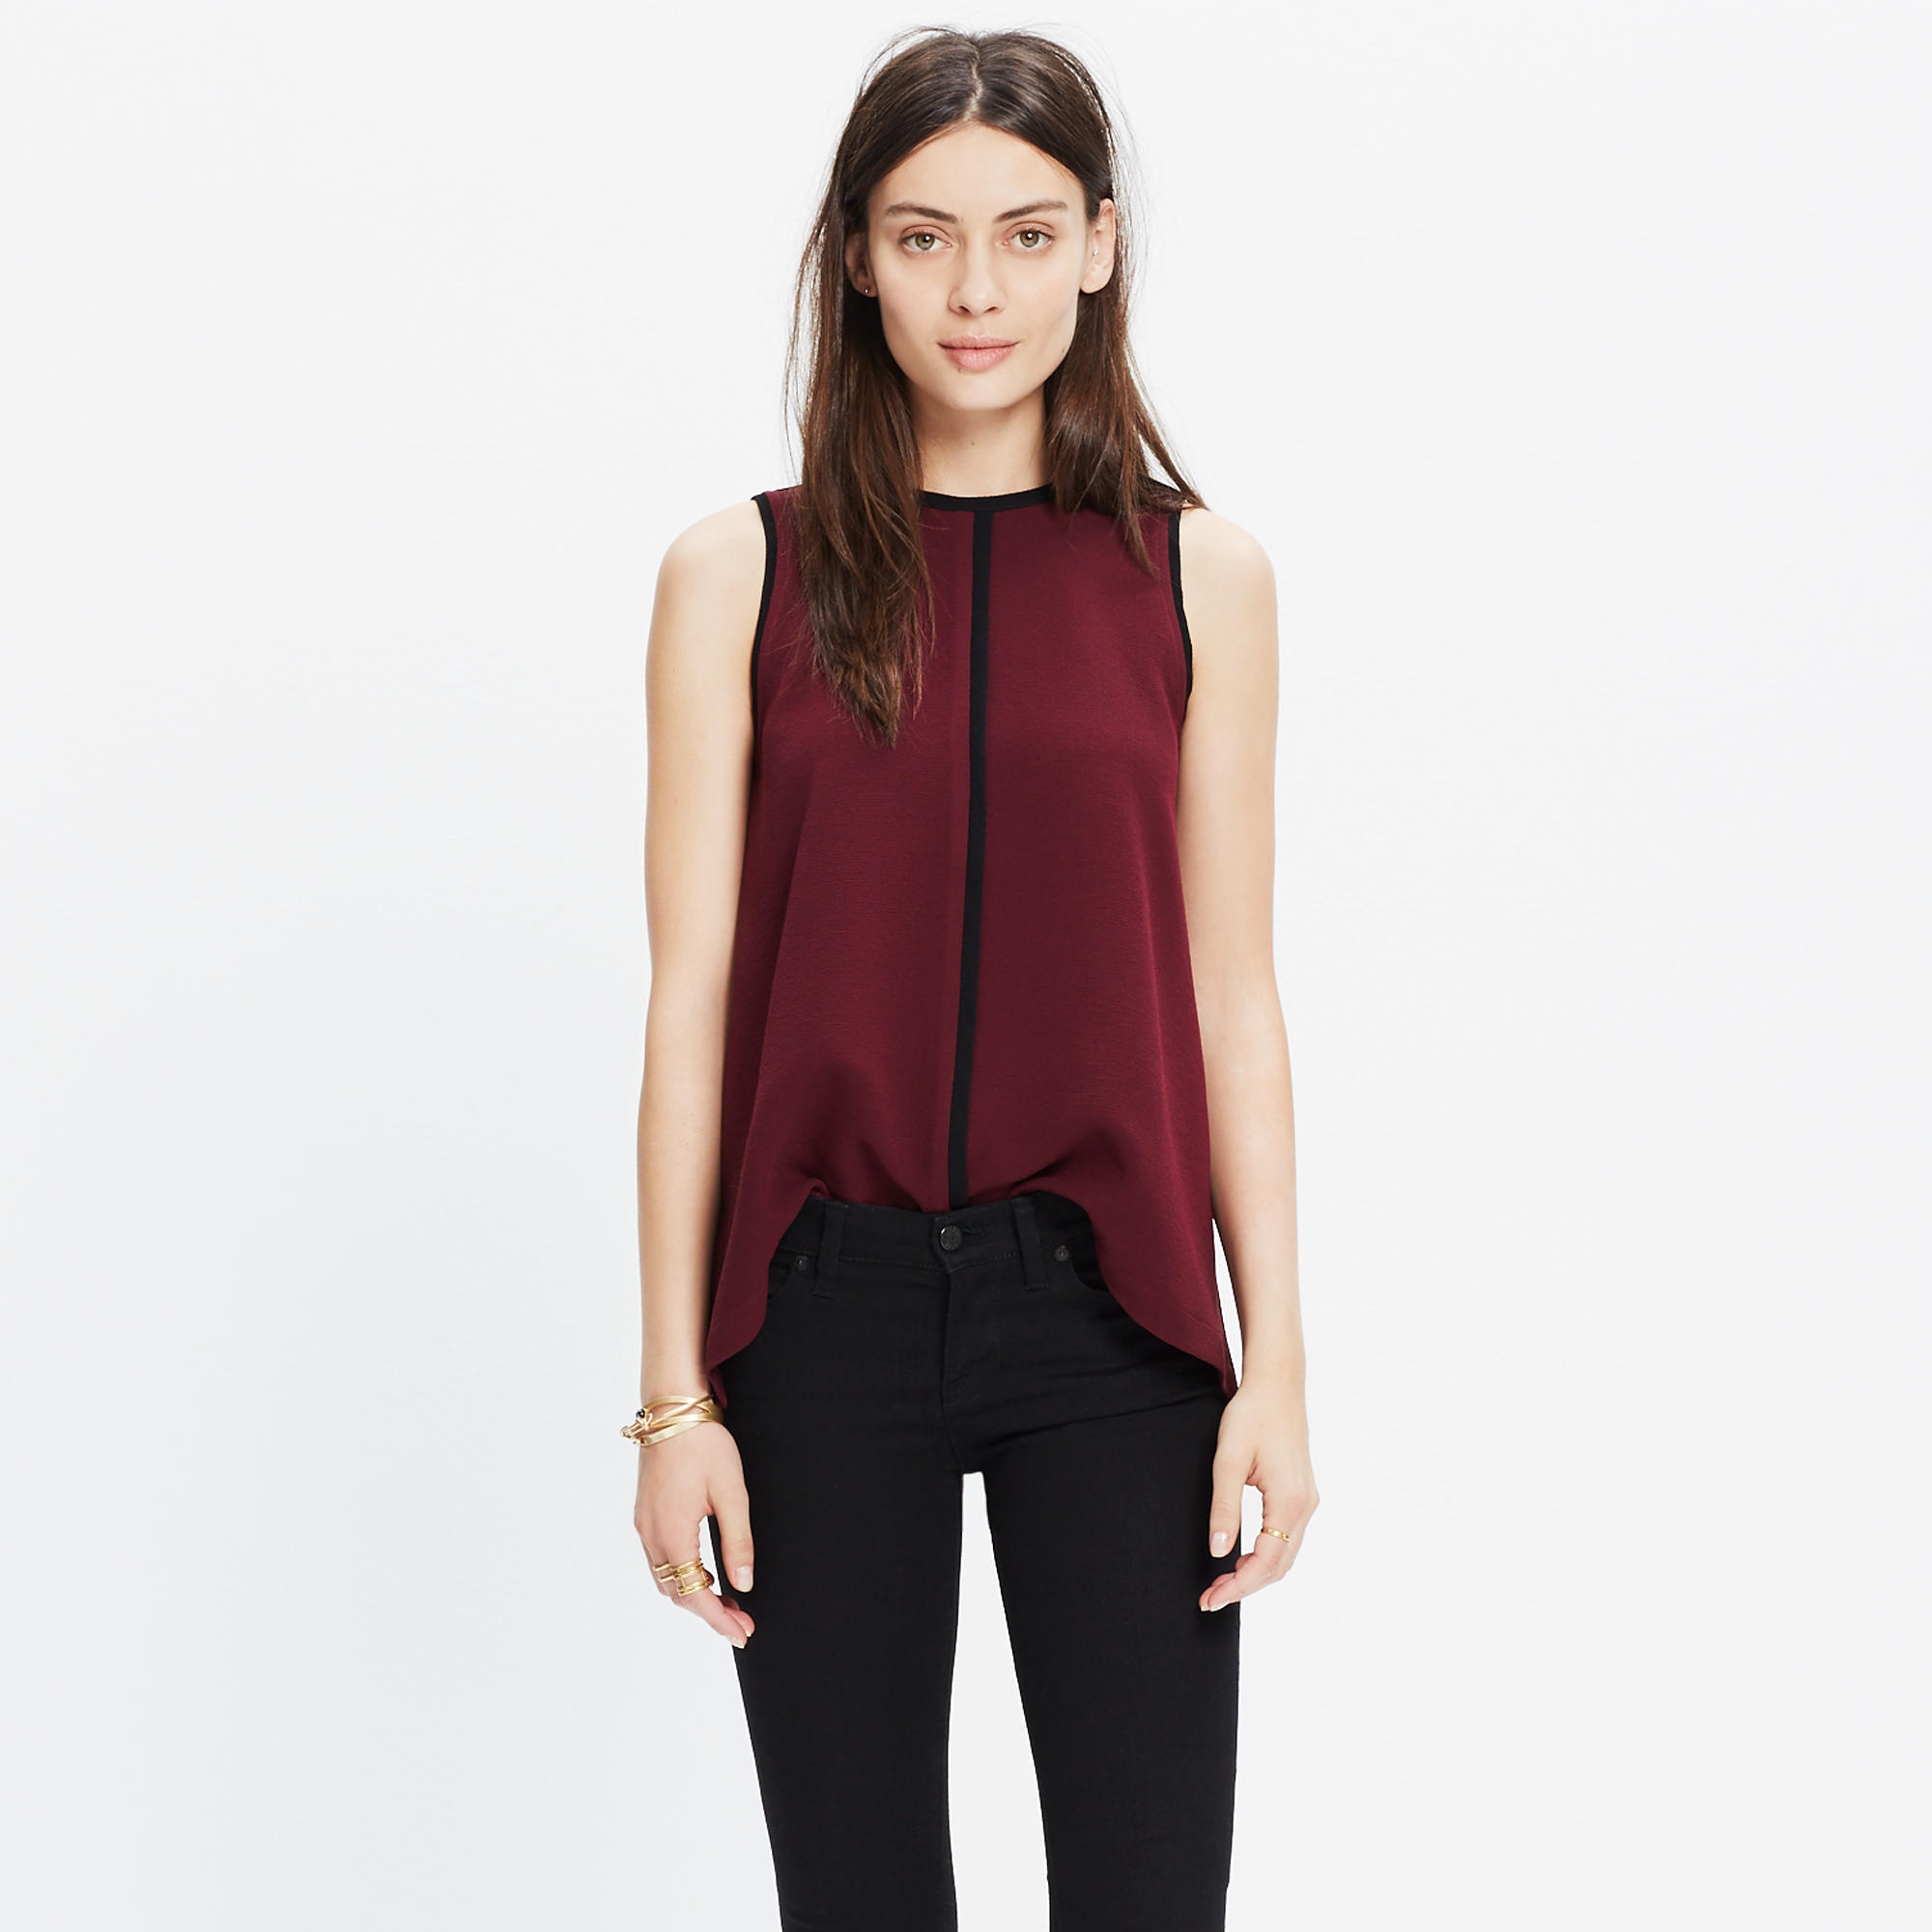 clothing lang draped crossover jersey wool product top sleeveless lyst in normal gallery drapes helmut black sonar